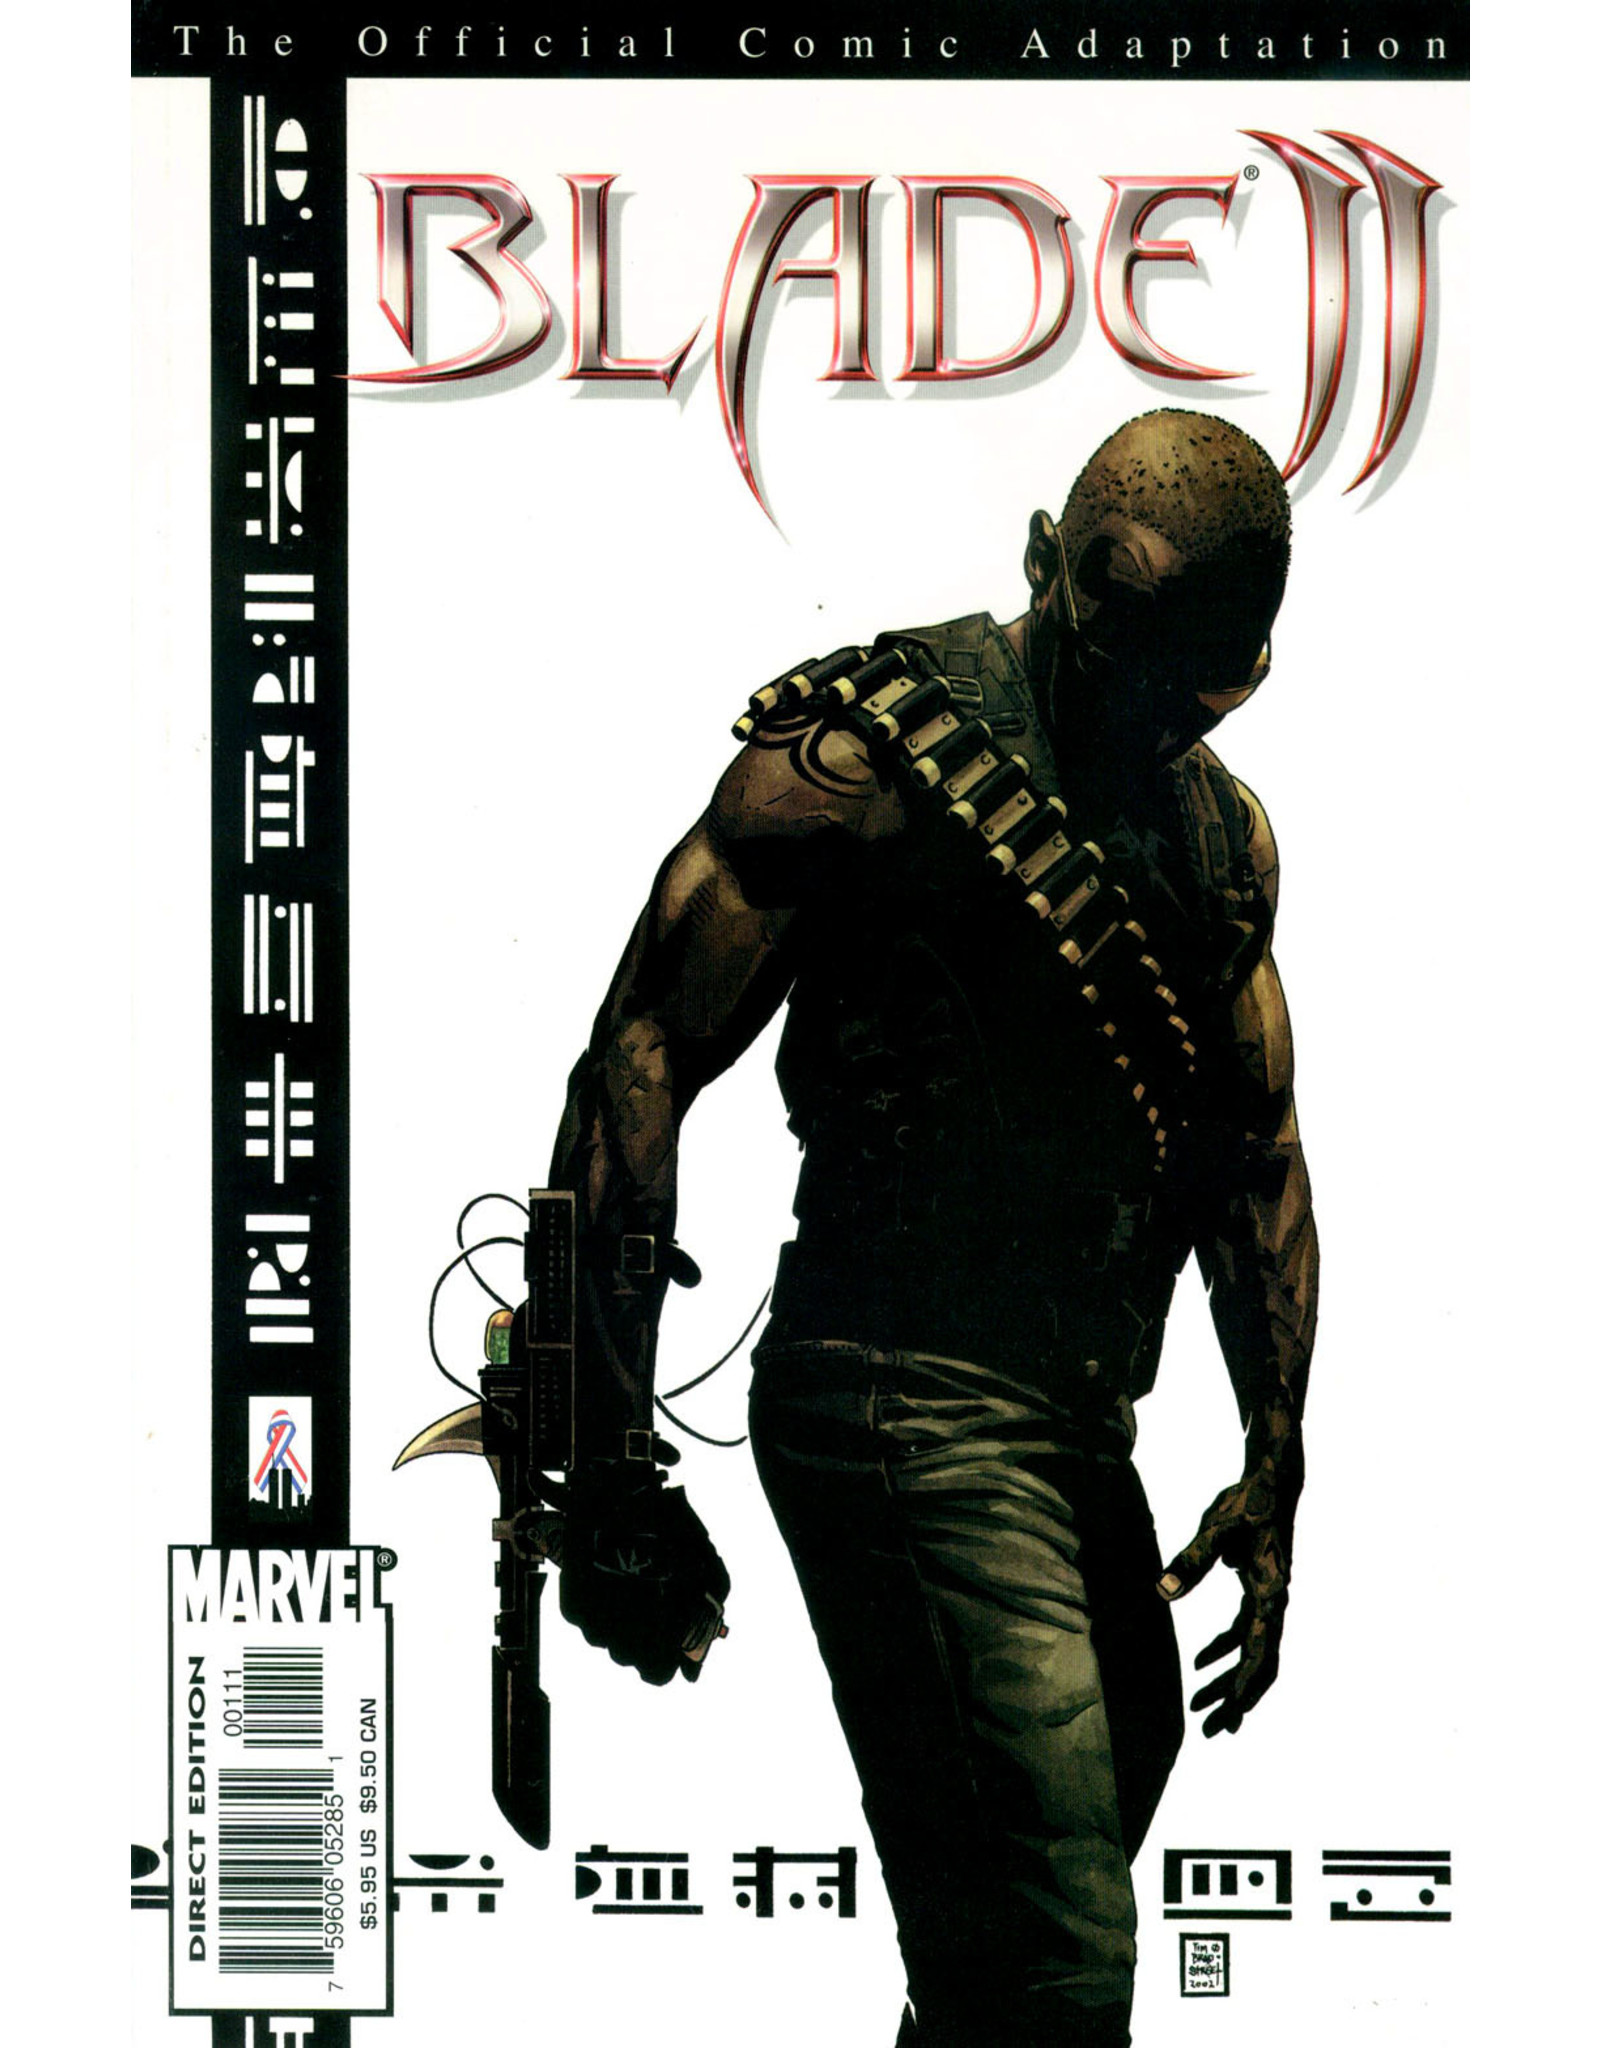 BLADE 2 OFFICIAL COMIC ADAPTATION